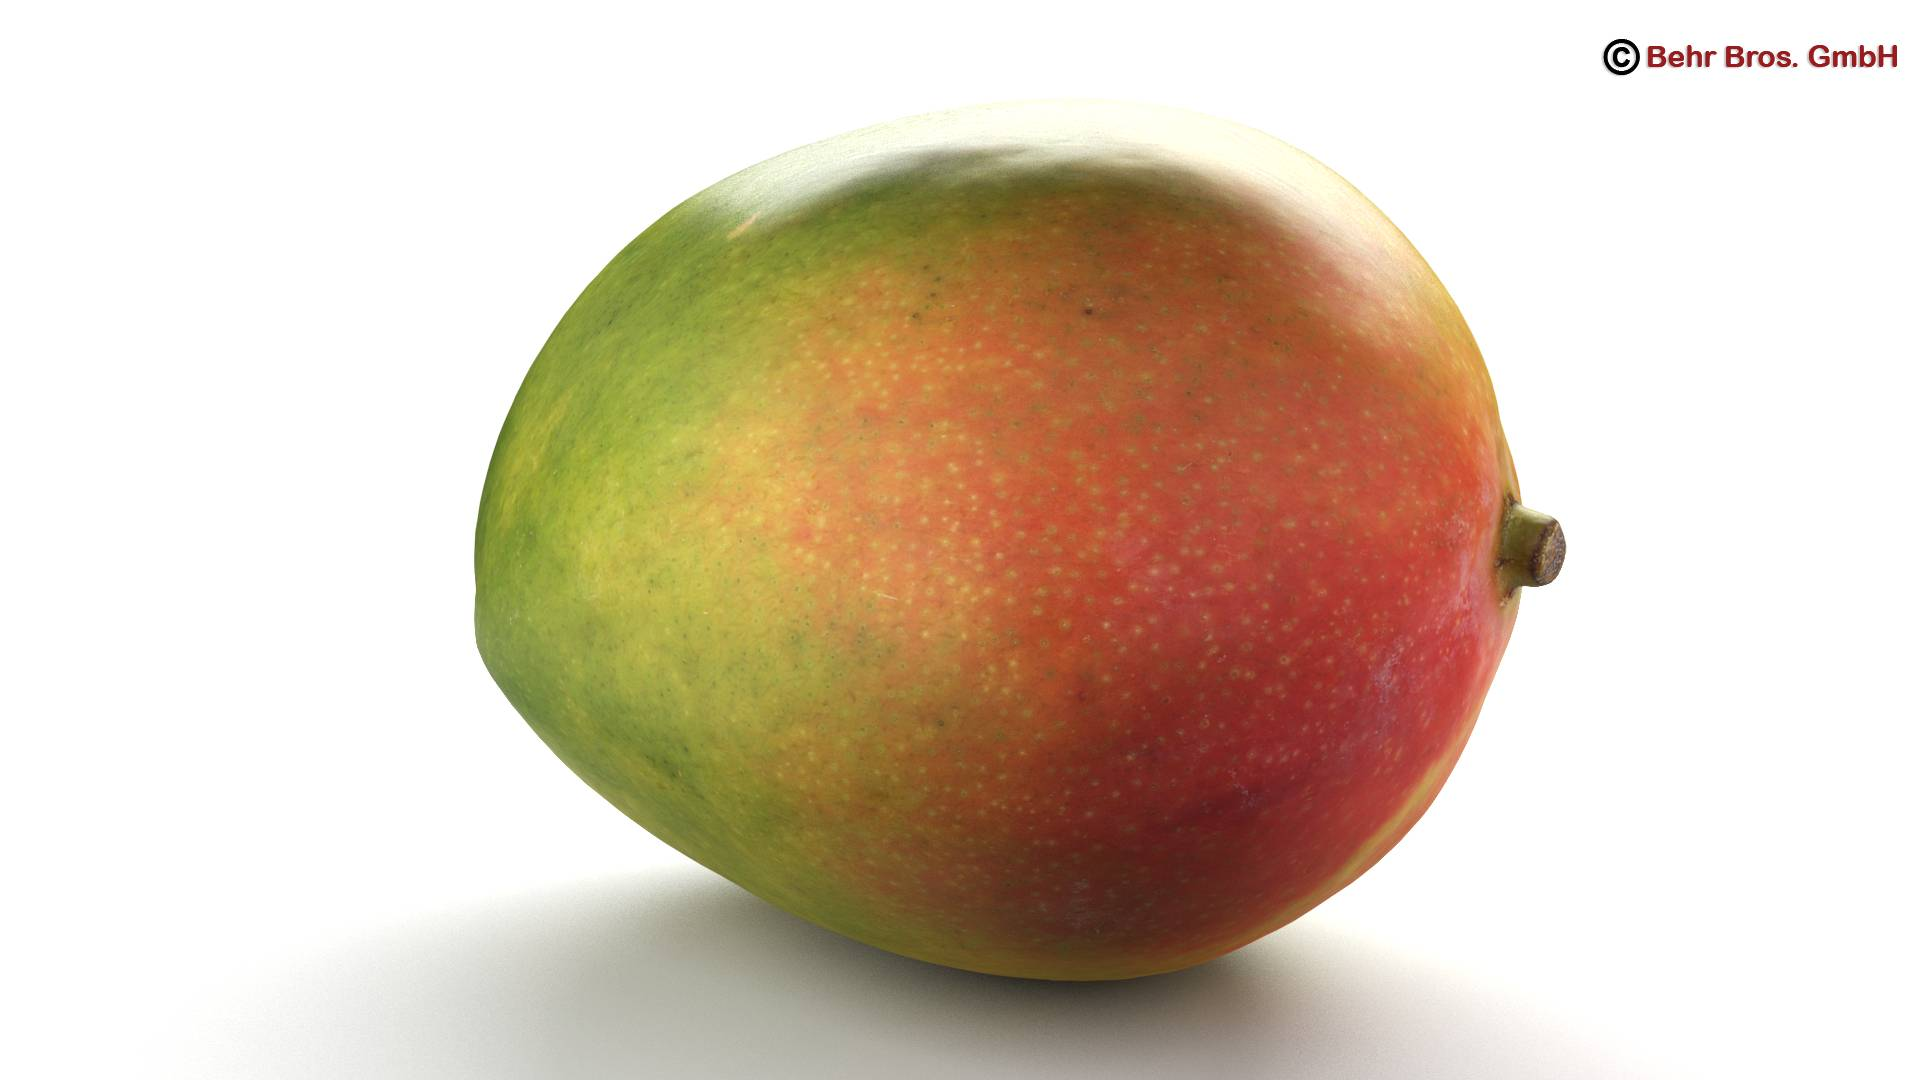 photo realistic mangos 3d model 3ds max fbx c4d lwo ma mb obj 217598